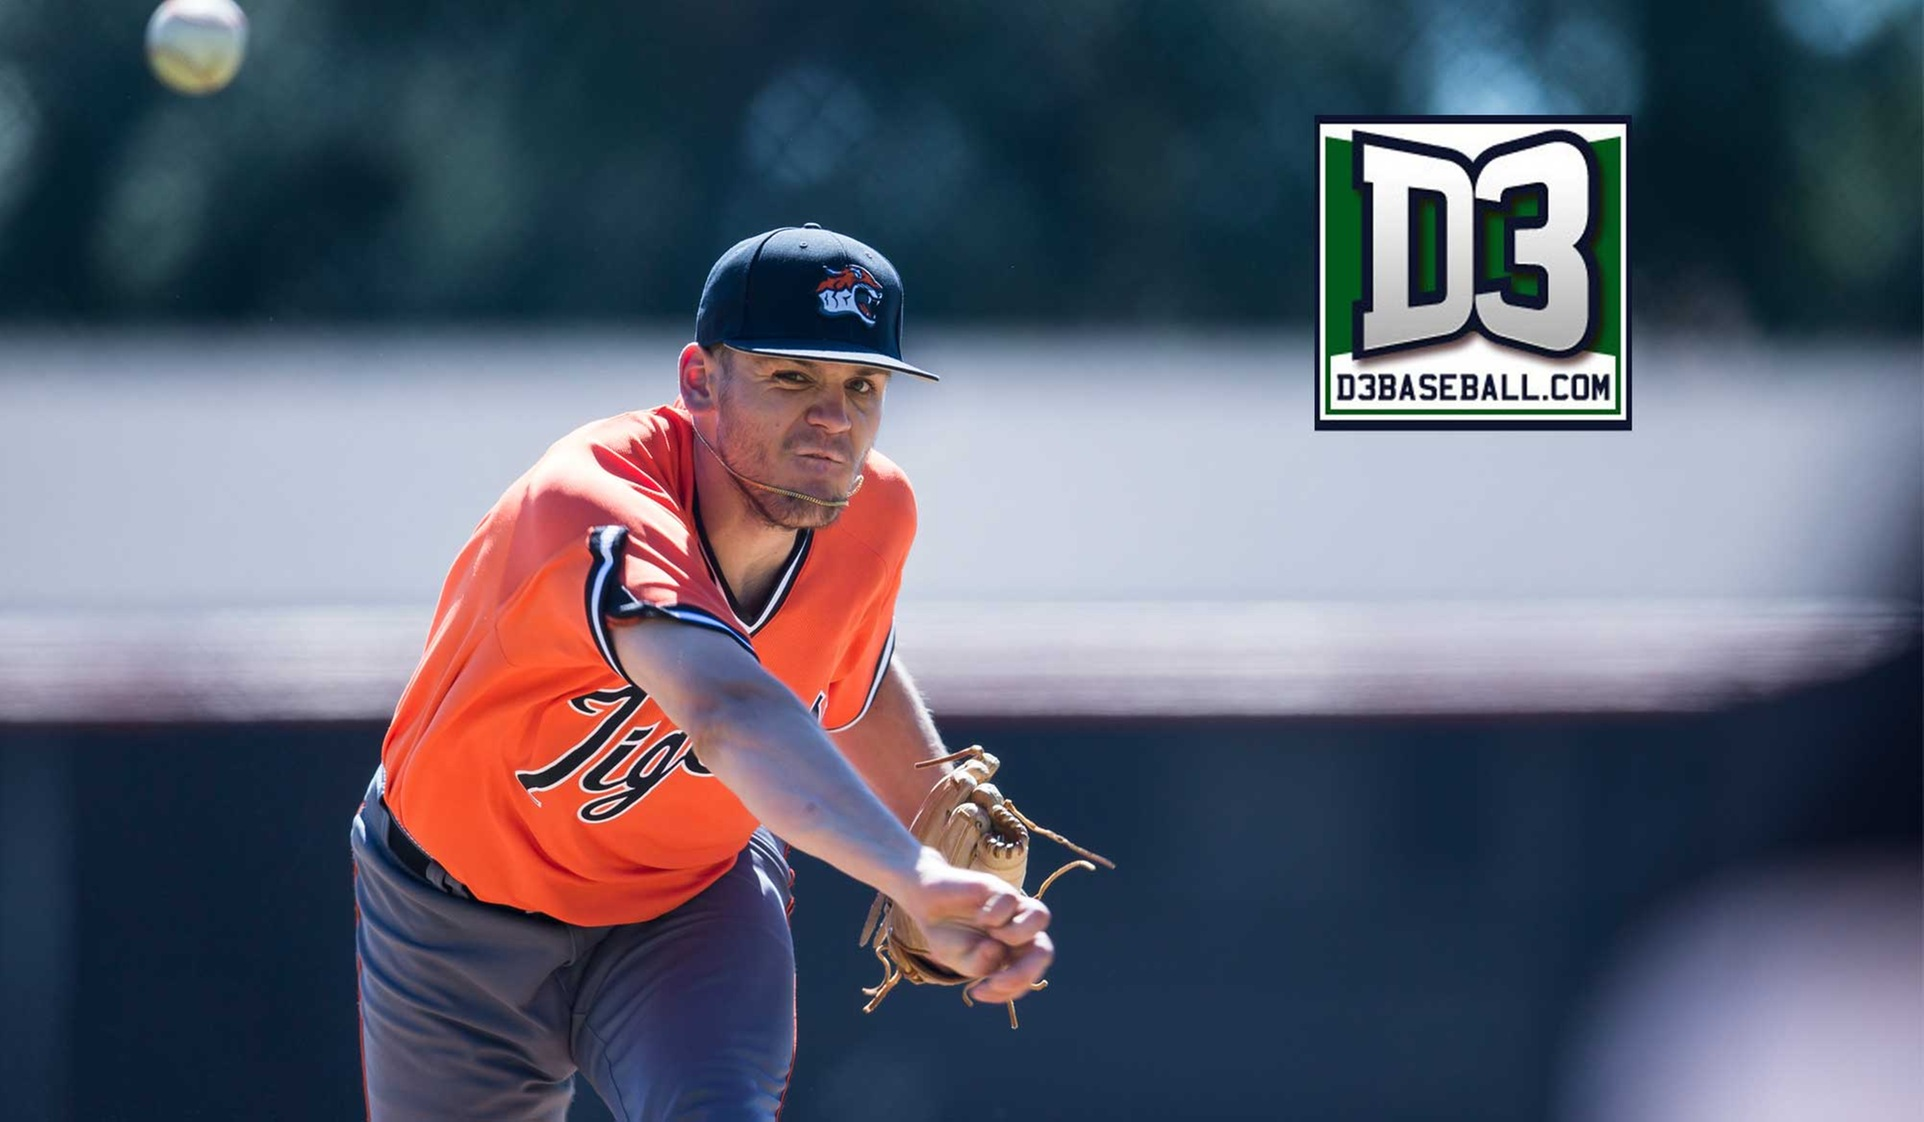 McCarthy Named D3baseball.com All-American